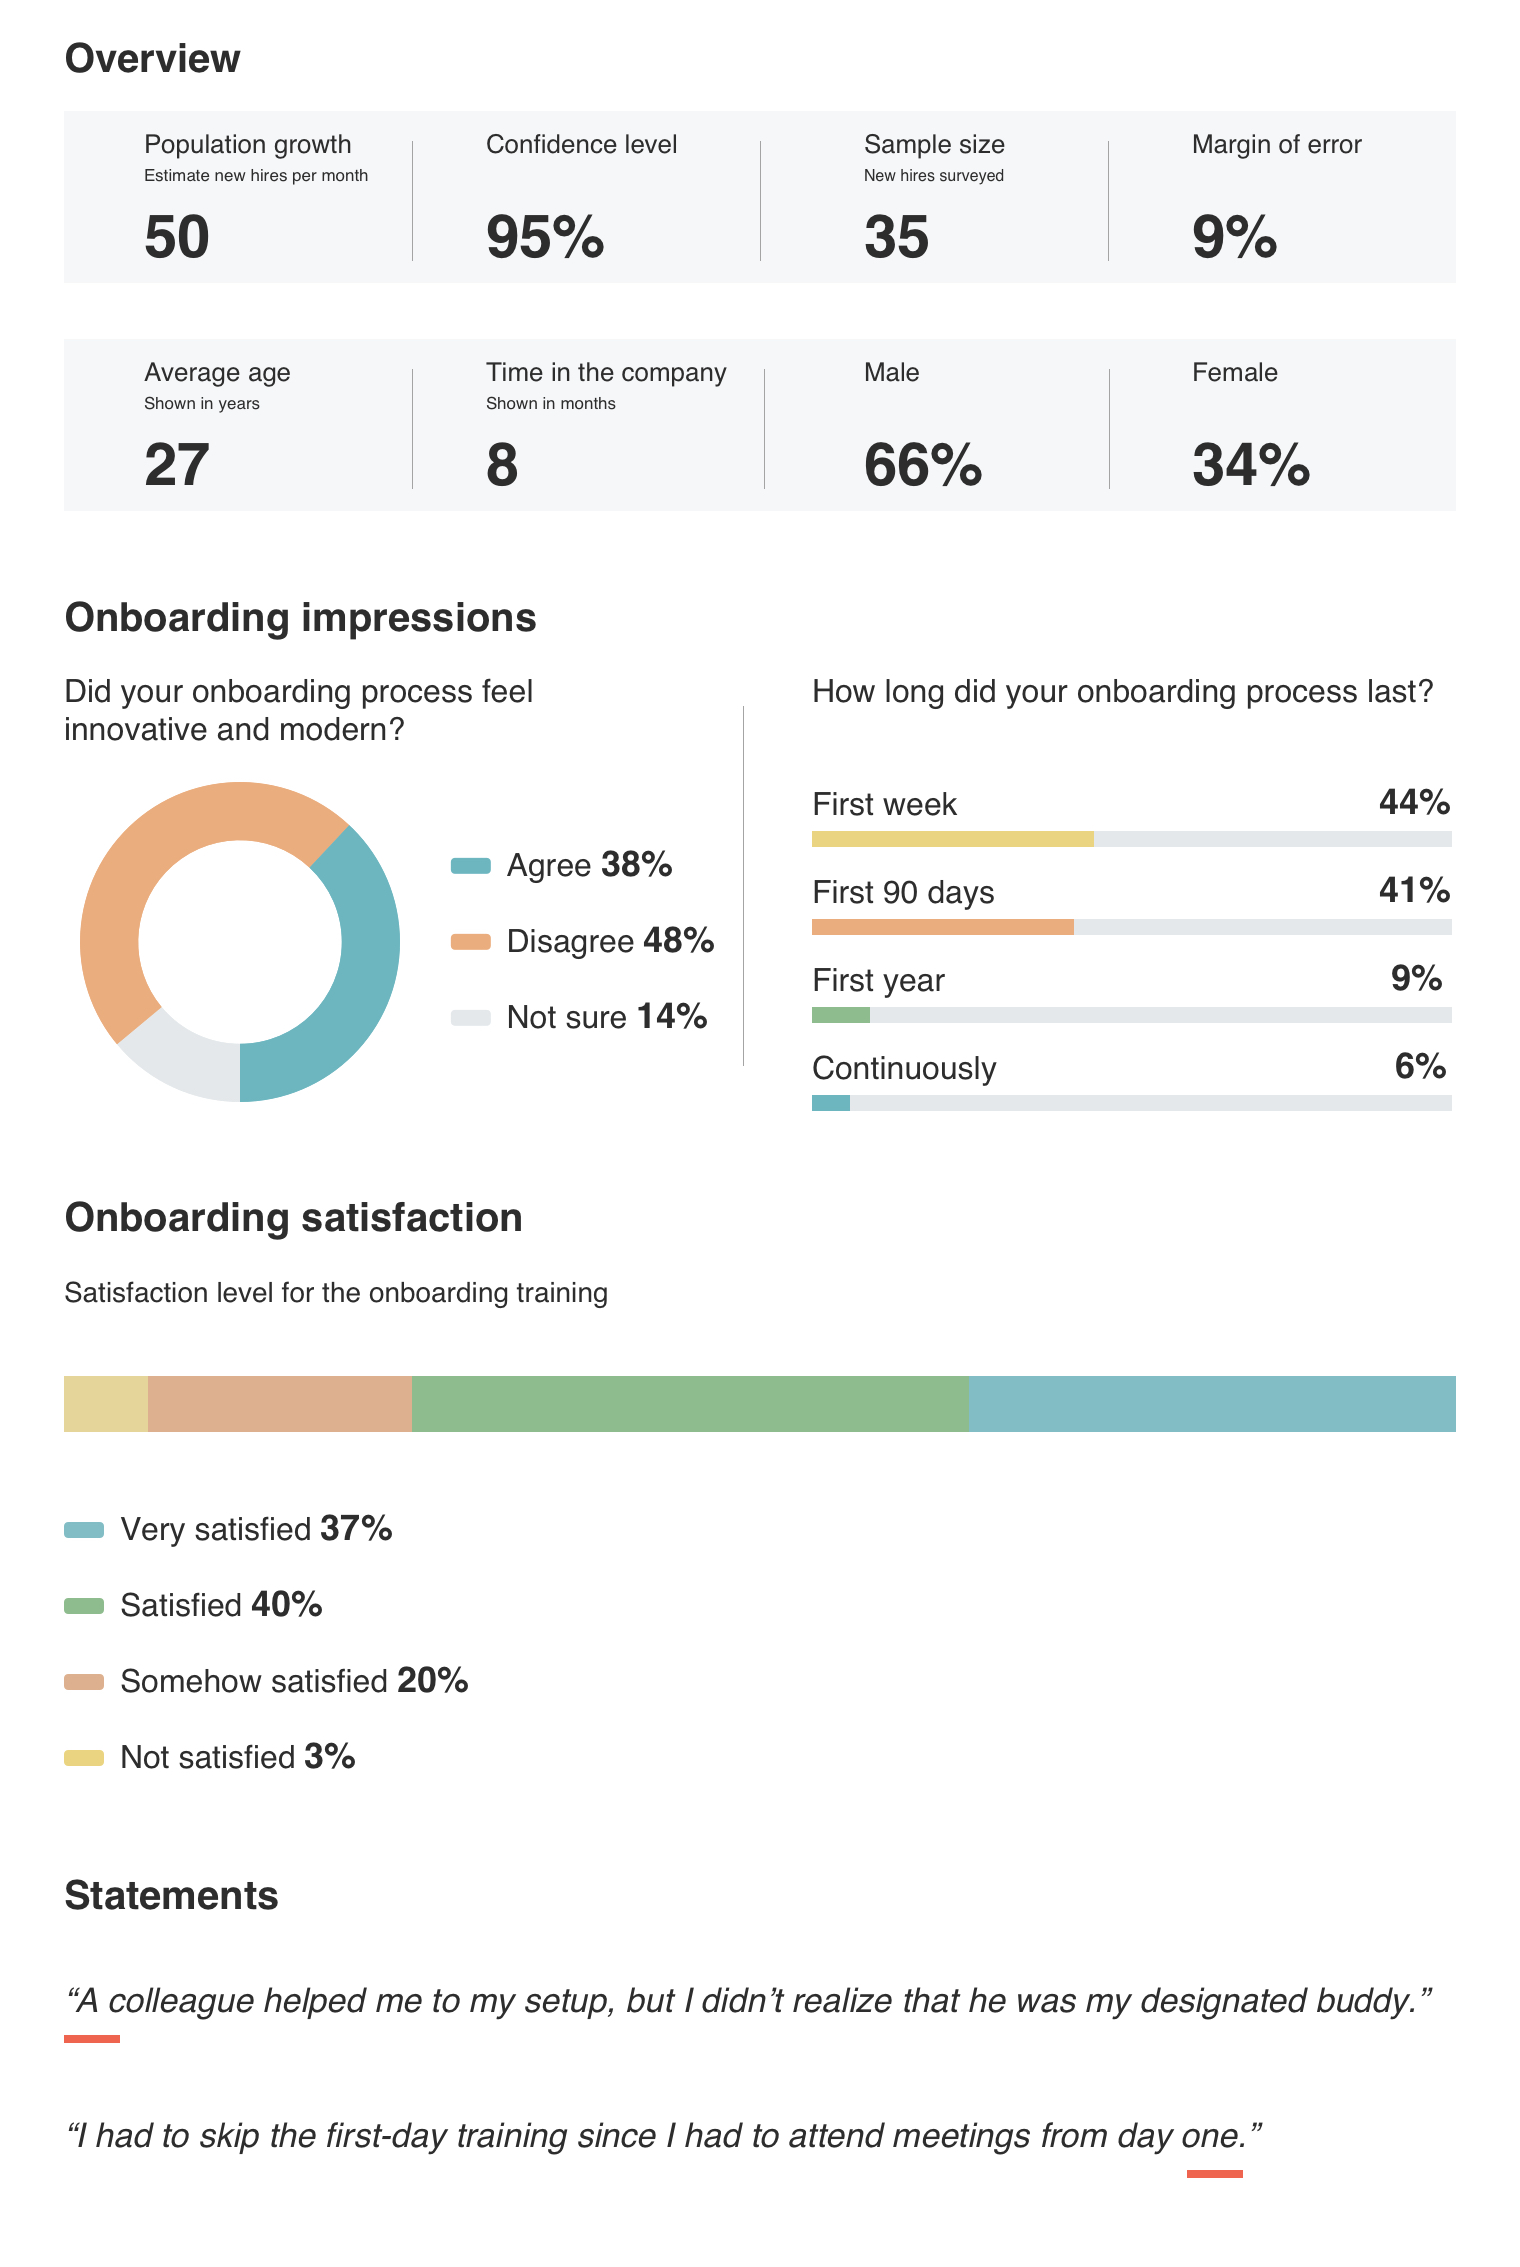 Charts and results for the internal evaluation